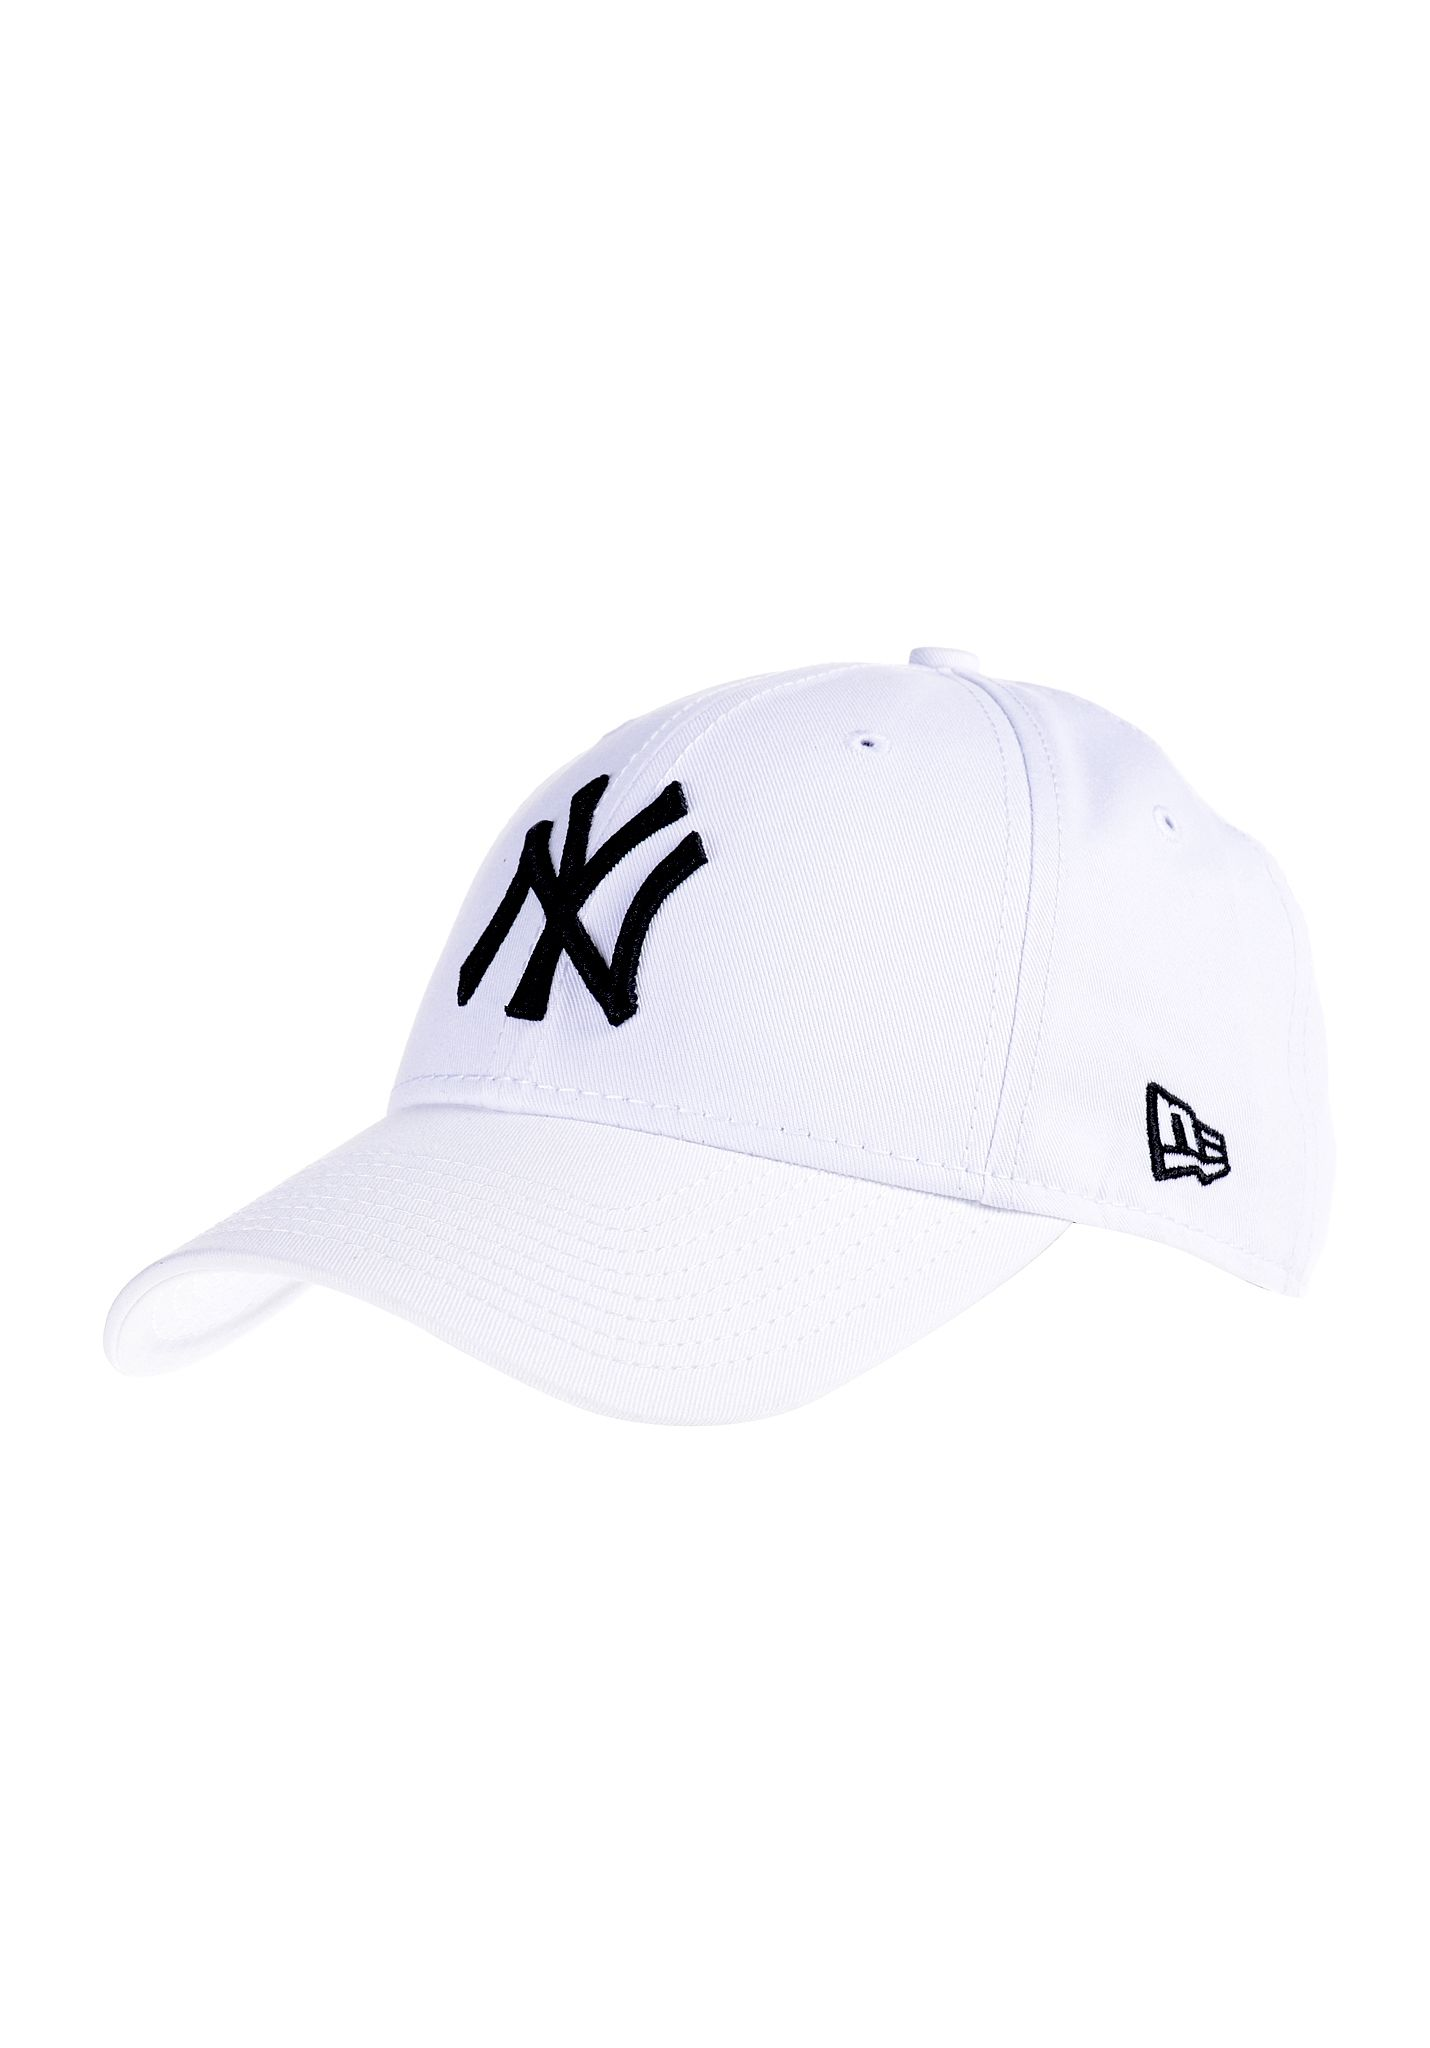 NEW Era 9Forty New York Yankees - Cap - White - Planet Sports 3319d6a7558